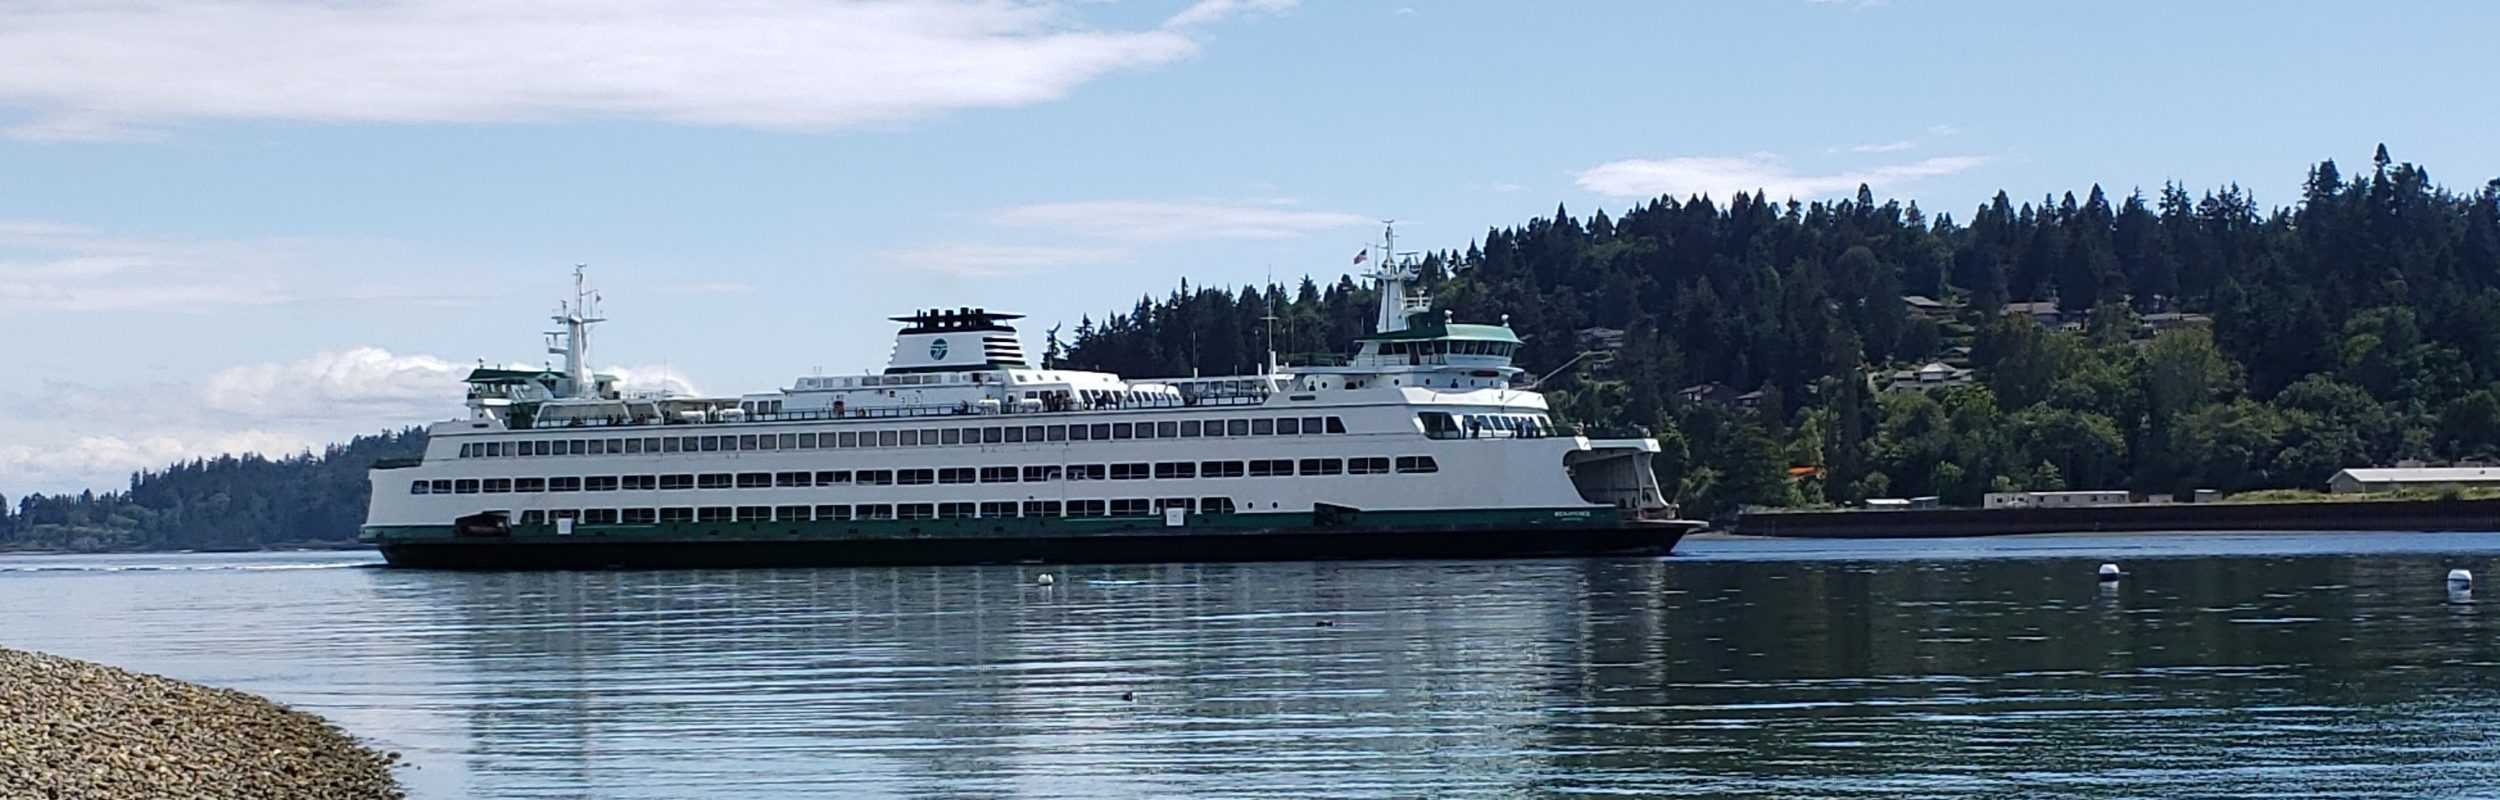 Based out of beautiful Bainbridge Island, WA.